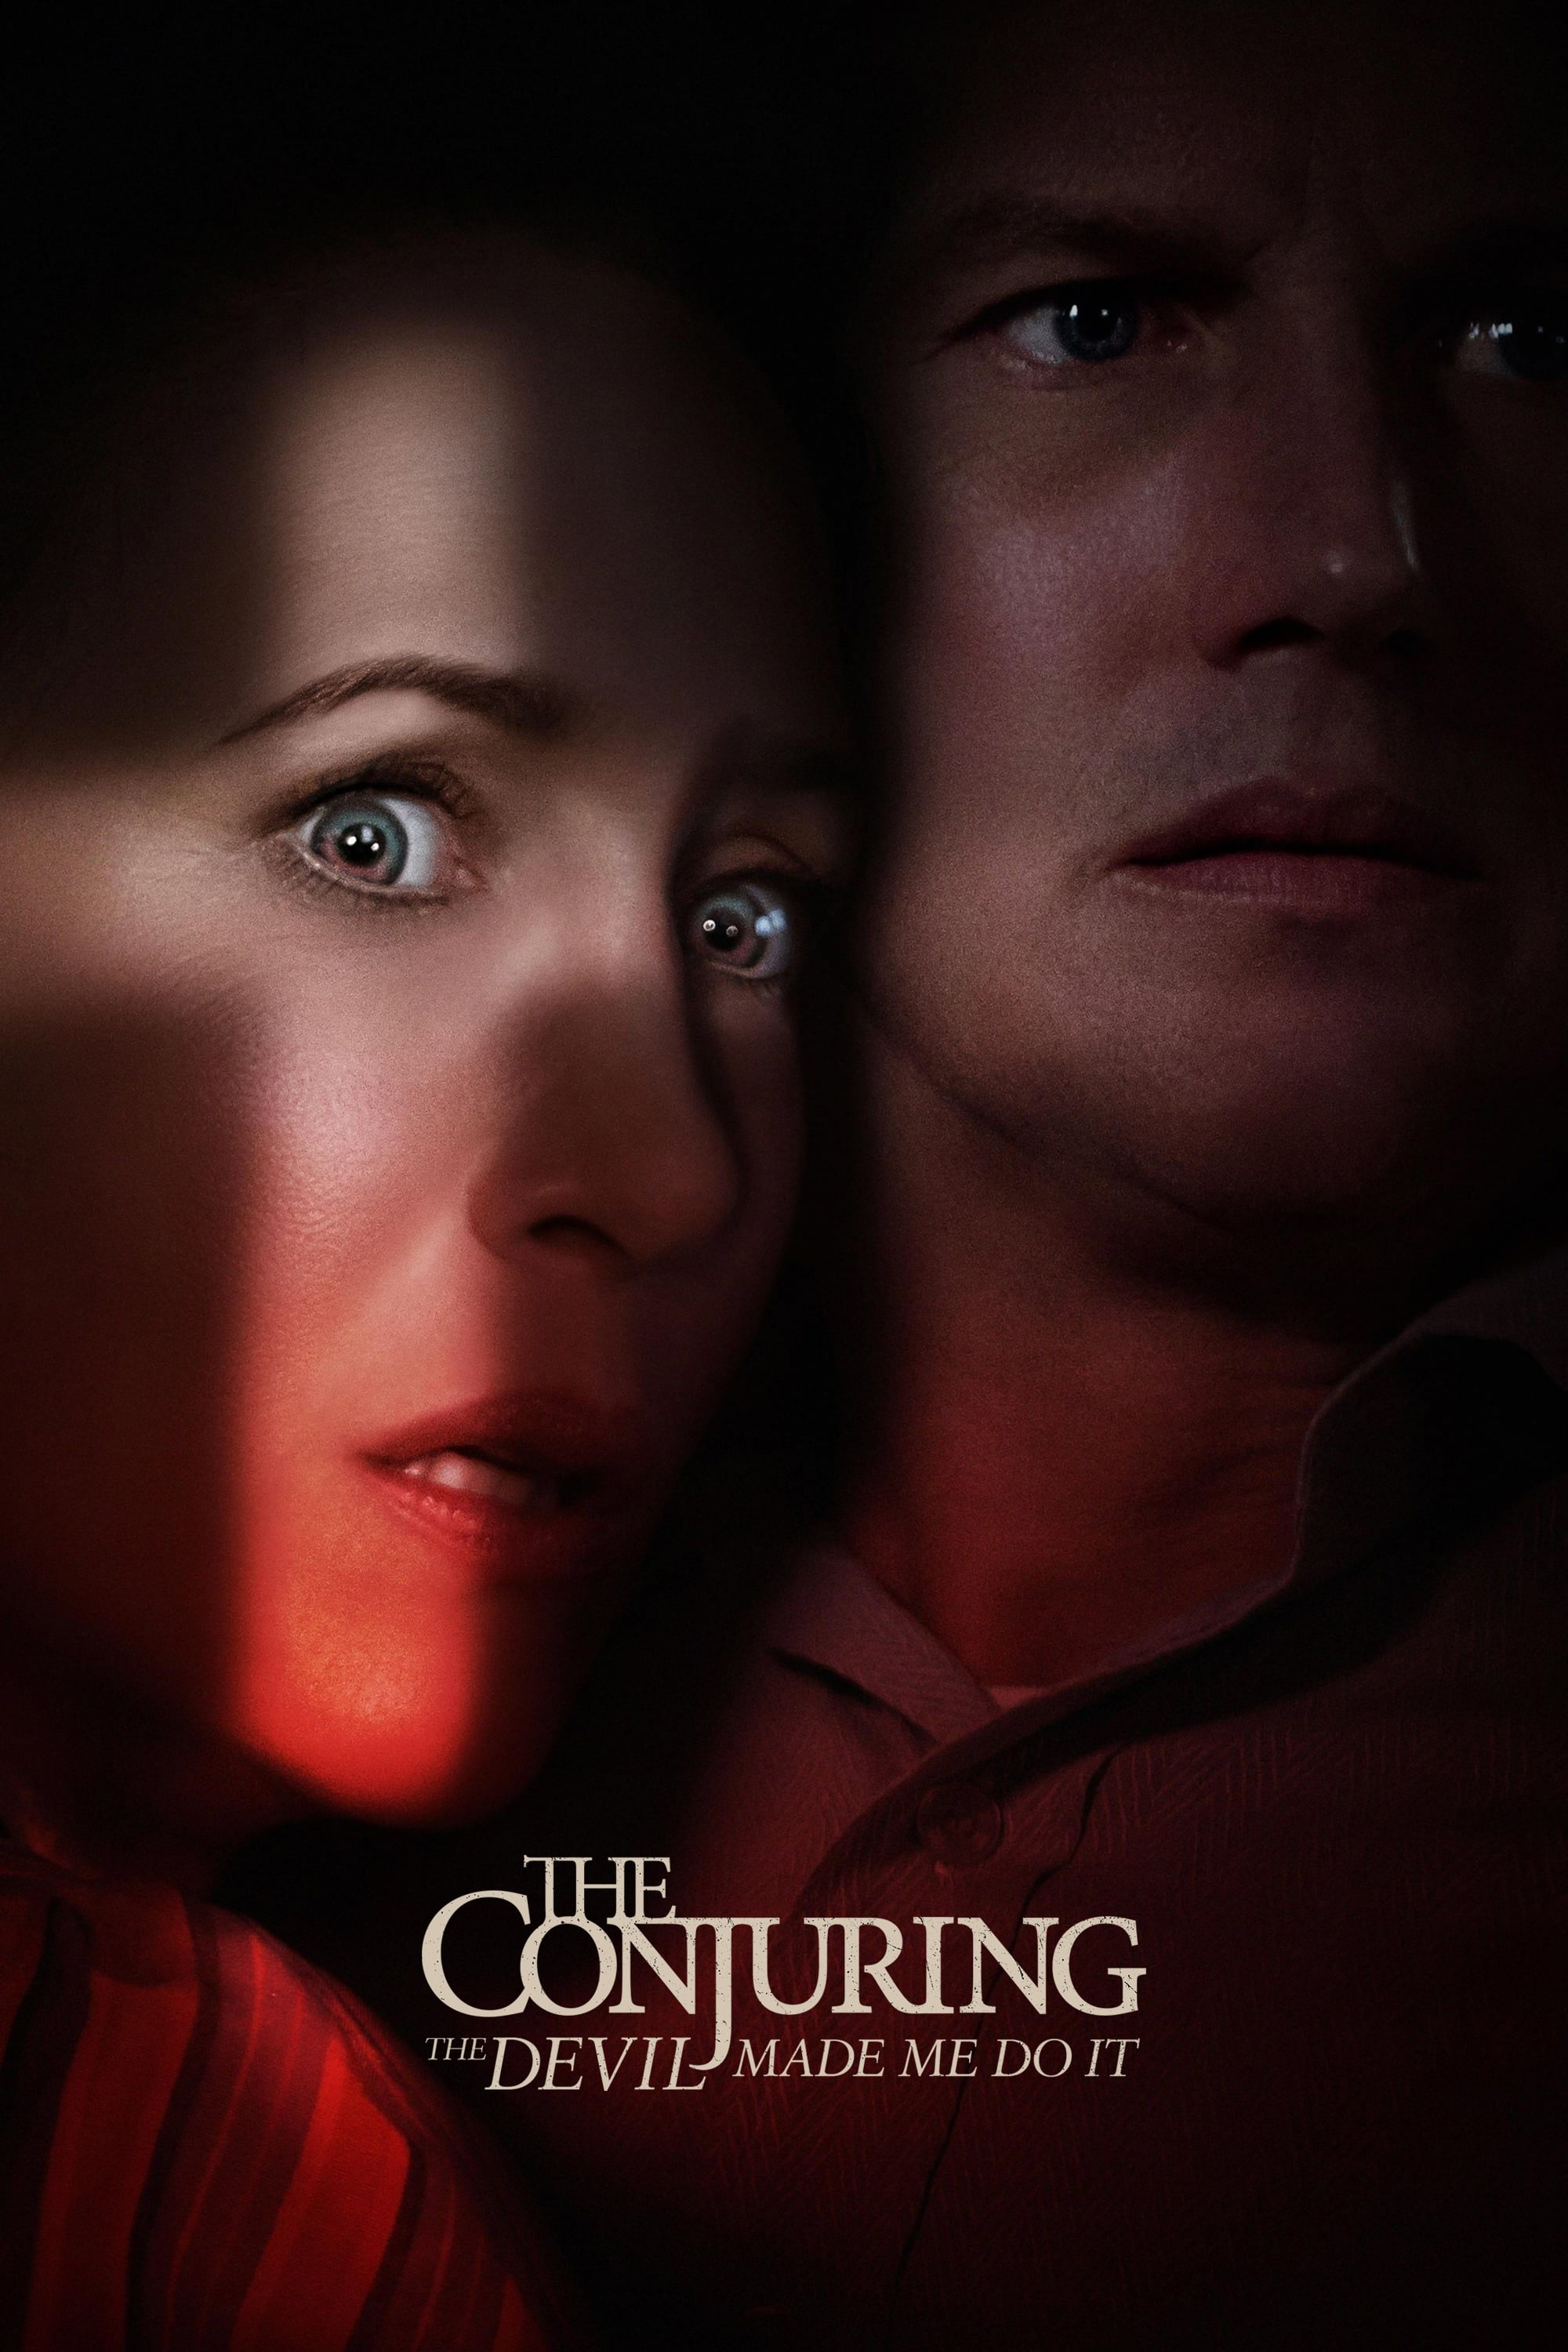 The Conjuring - The Devil Made Me Do It